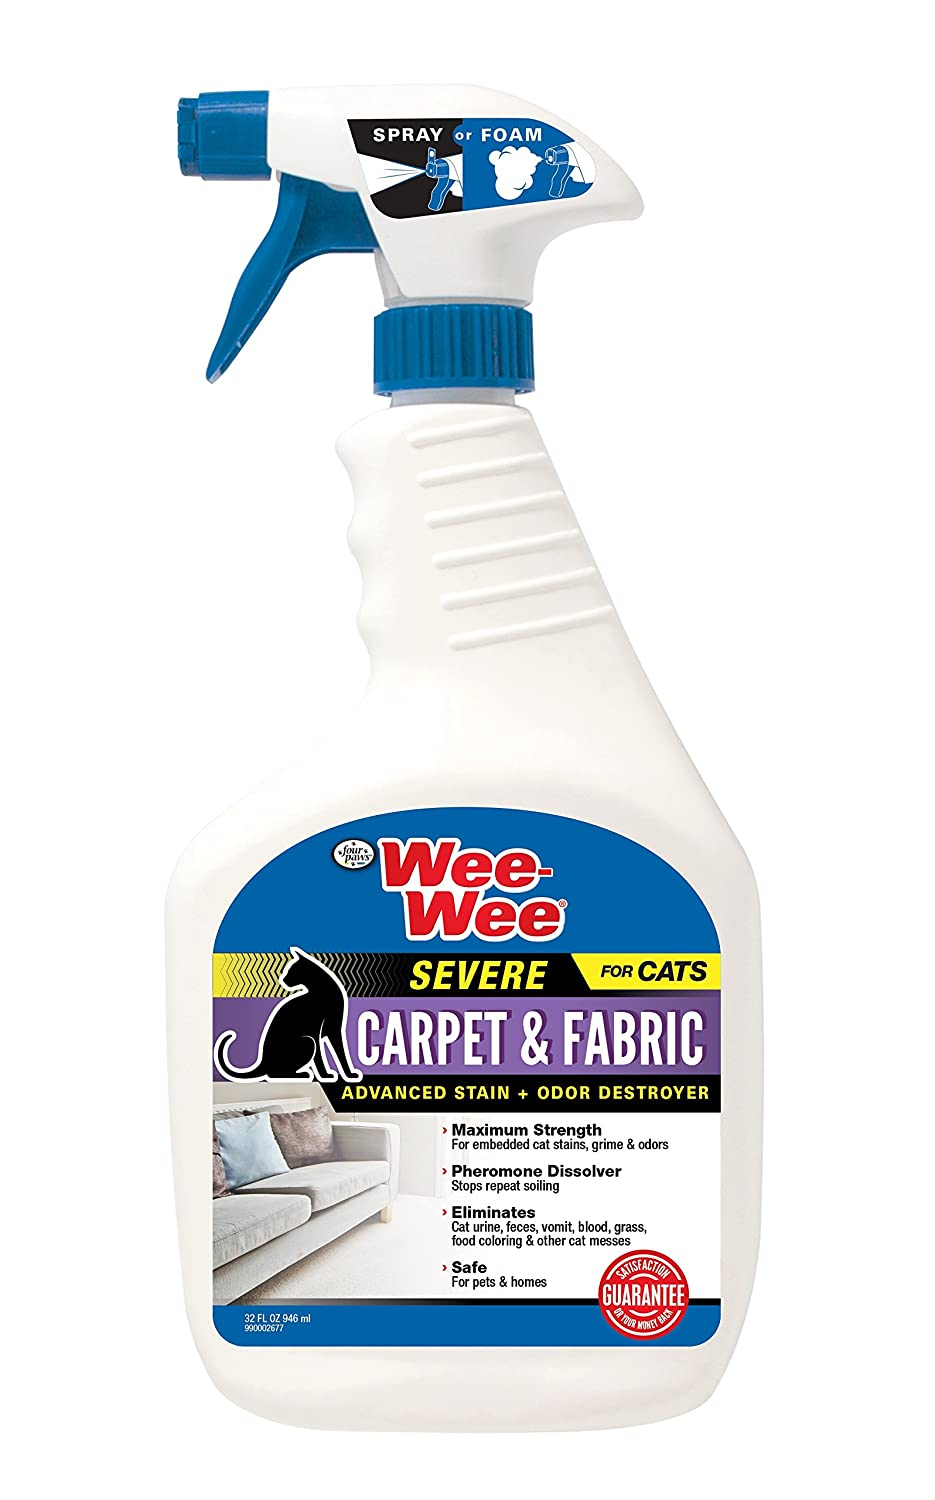 Four Paws Wee Wee Cat Carpet Fabric Severe Stain Odor Destroyer 32 oz